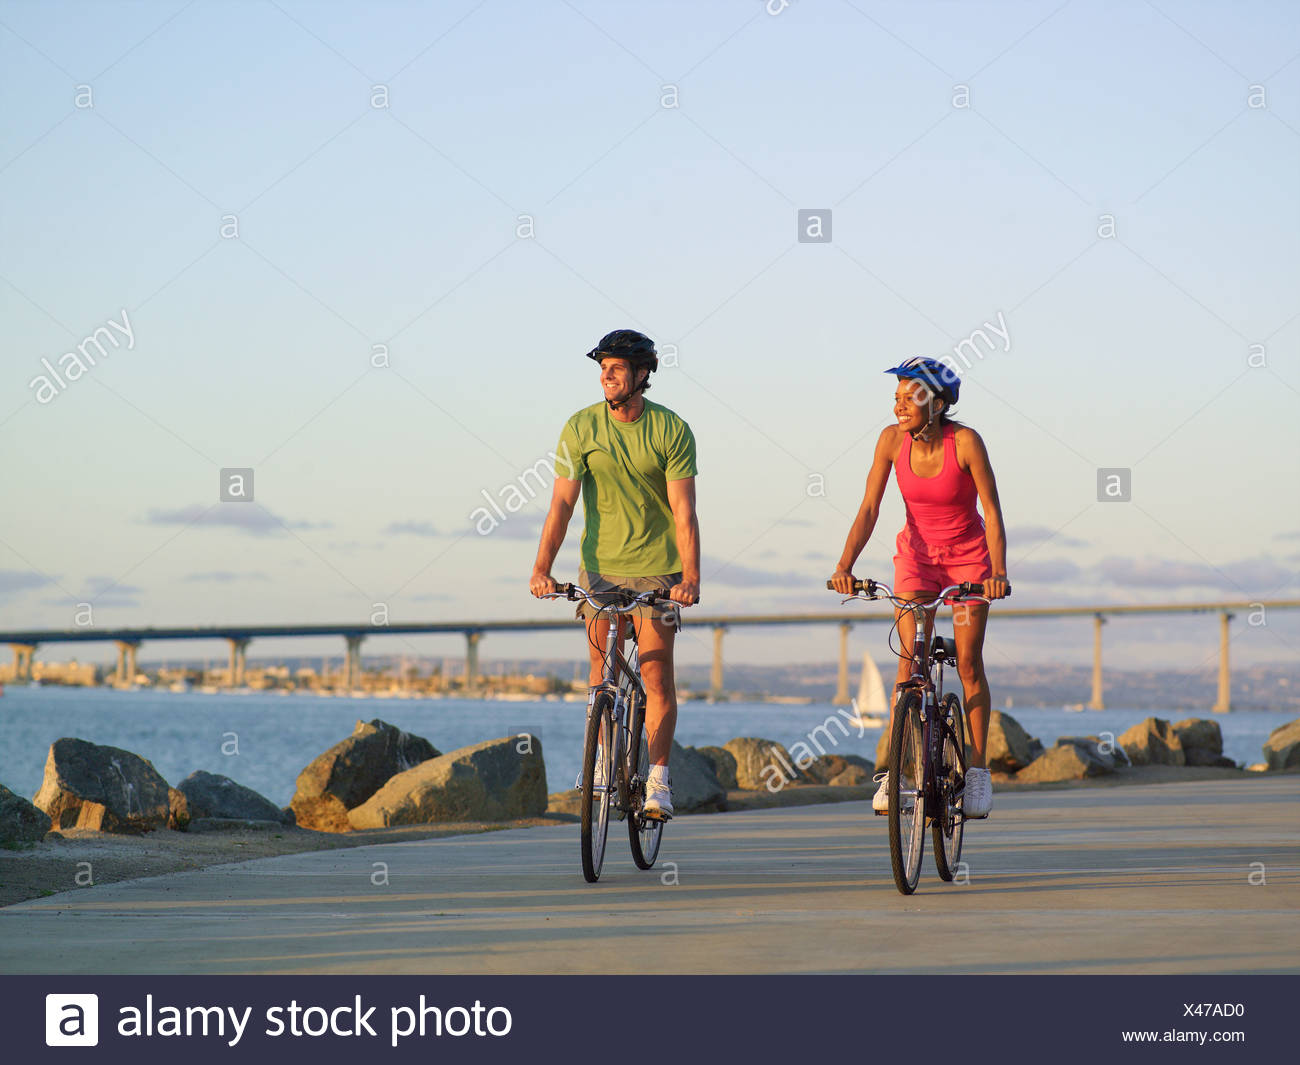 Young couple cycling on boulevard by sea at sunset, smiling - Stock Image